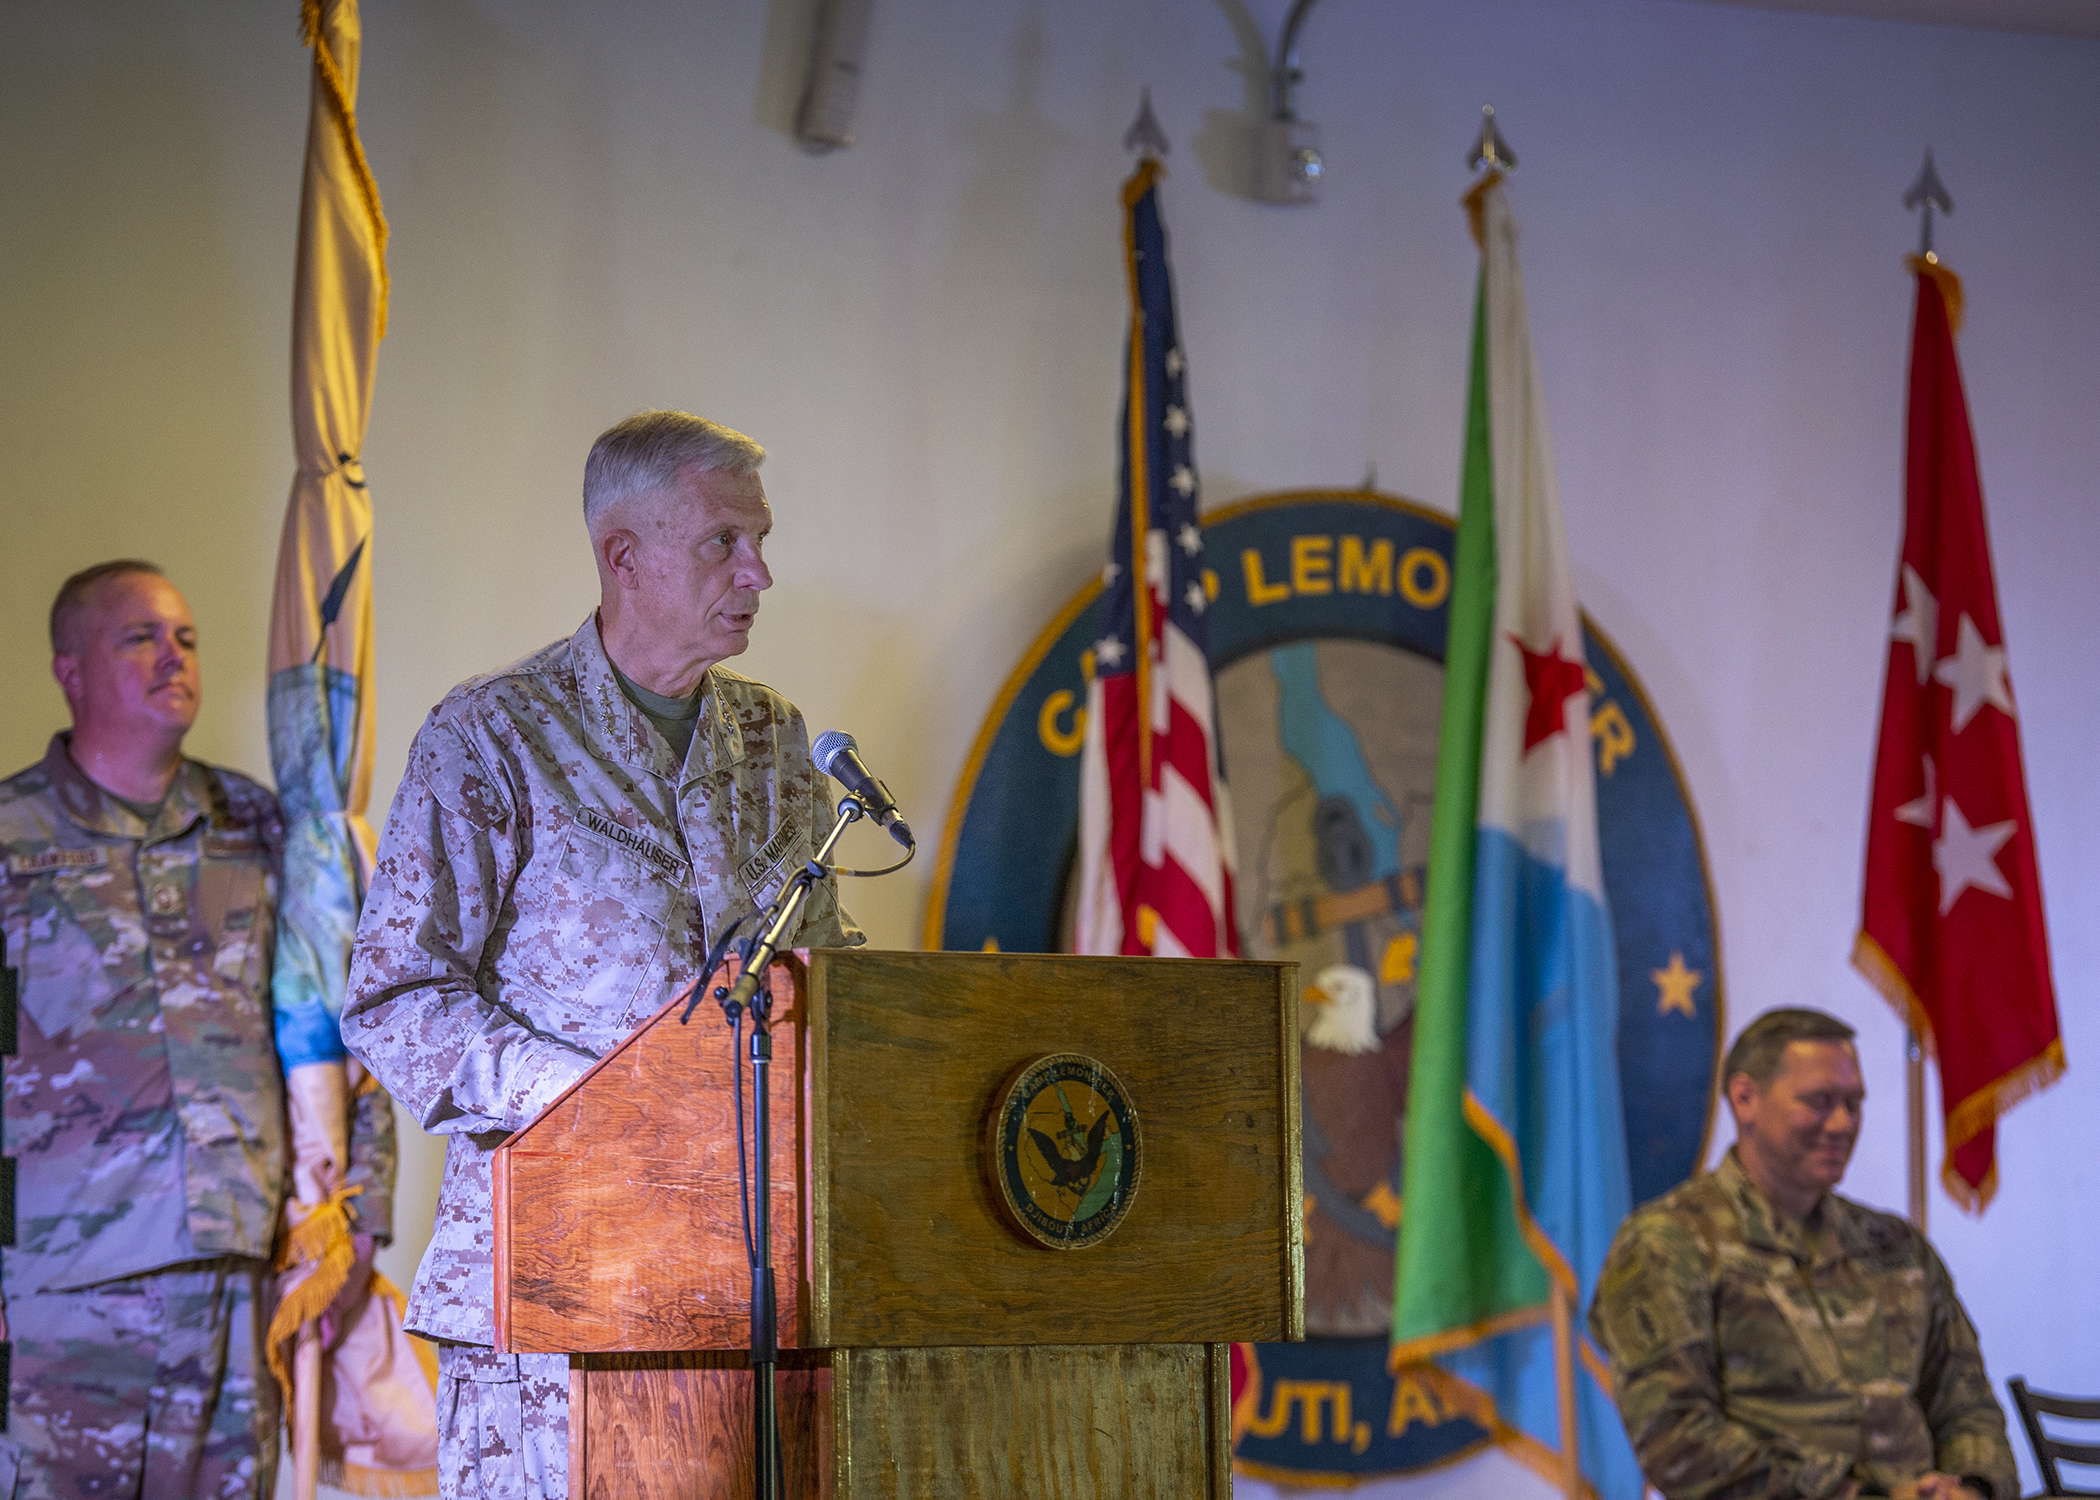 U.S. Marine Corps Gen. Thomas Waldhauser, commander of U.S. Africa Command, gives remarks during a change of command ceremony for Combined Joint Task Force-Horn of Africa (CJTF-HOA) at Camp Lemonnier, Djibouti, June 12, 2019. U.S. Army Maj. Gen. James D. Craig, outgoing commanding general of CJTF-HOA, transferred responsibility to U.S. Army Maj. Gen. Michael D. Turello in the ceremony with Waldhauser as the presiding officer. (U.S. Air Force photo by Tech. Sgt. Shawn Nickel)